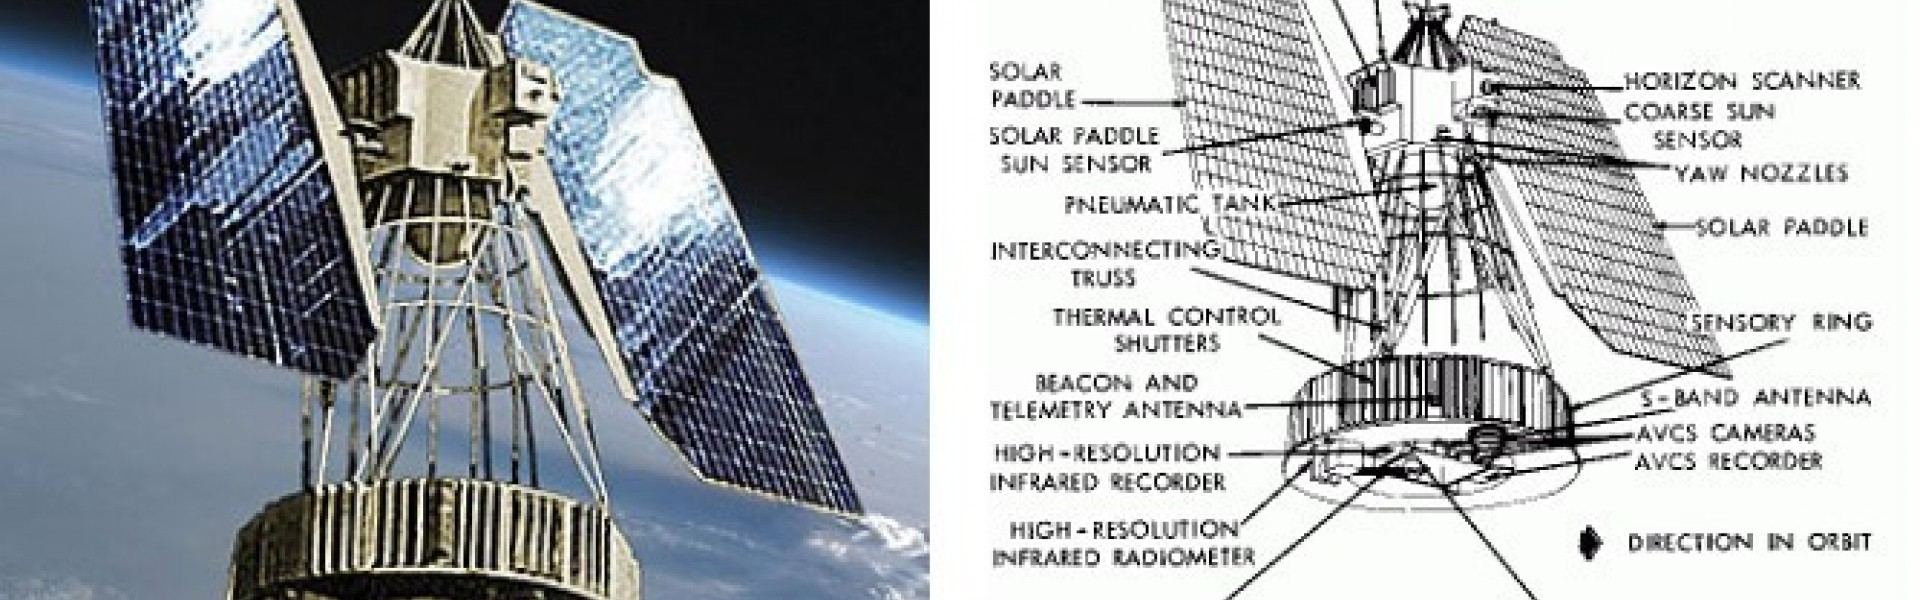 solar cells in space